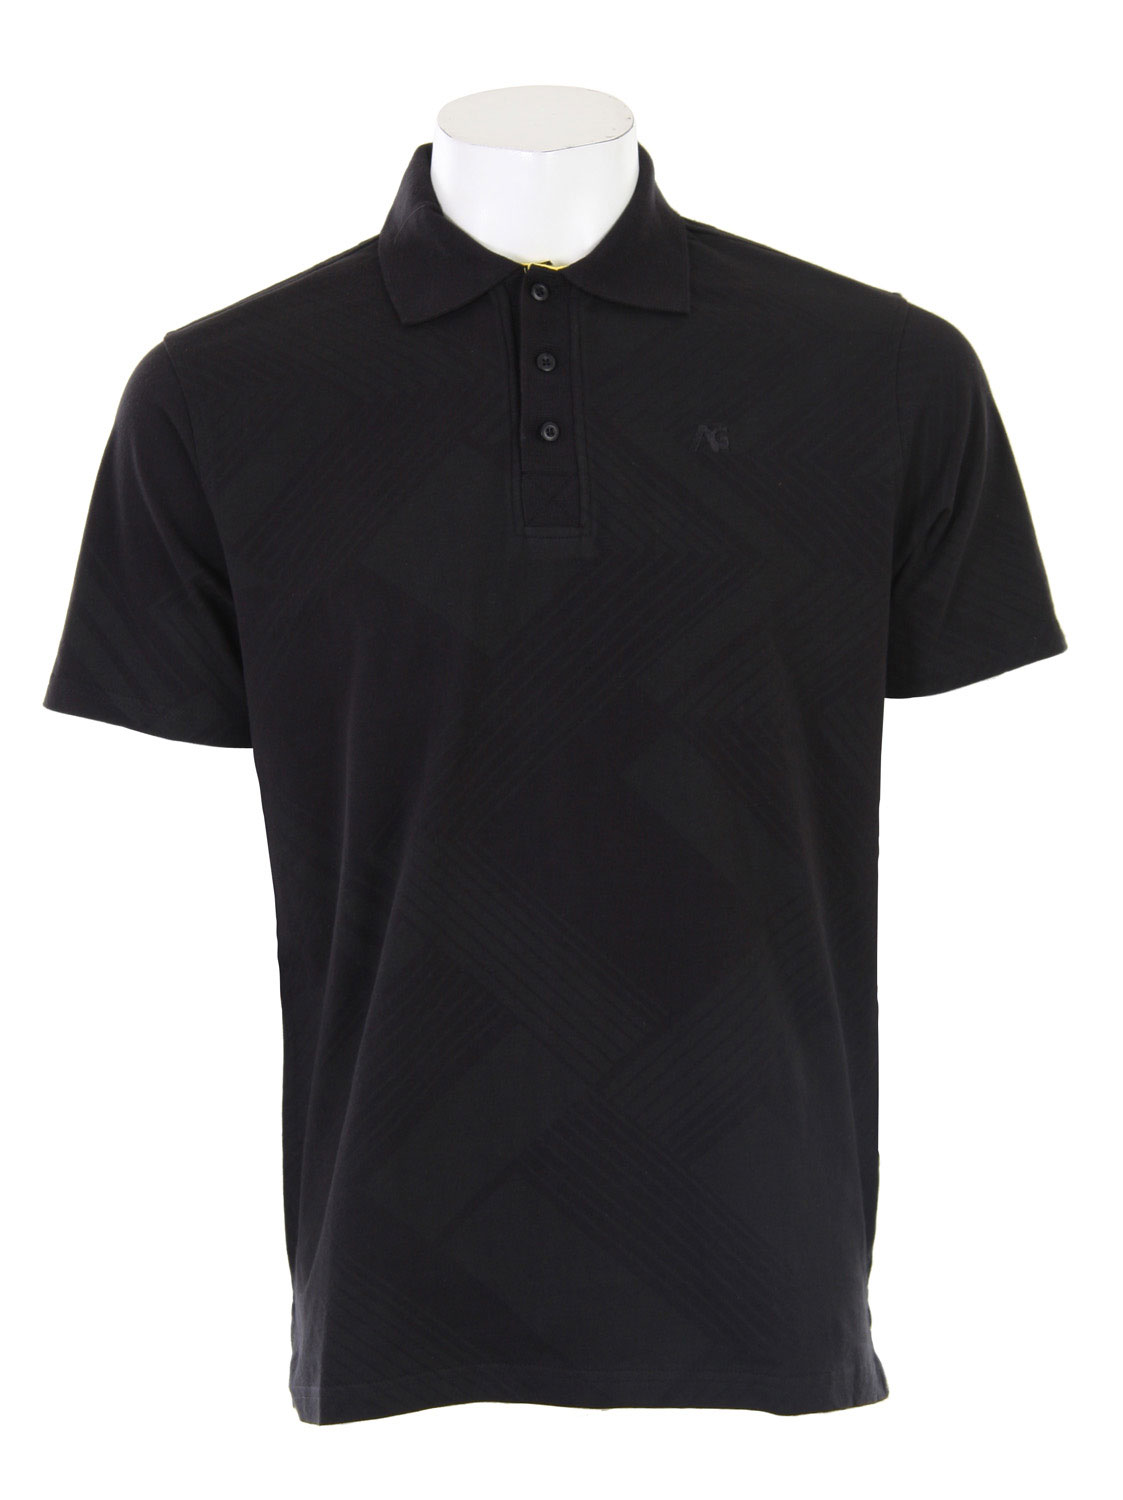 The Analog Nonchalant Polo Shirt. Flat knit collar and placket - Regular Fit - $20.95